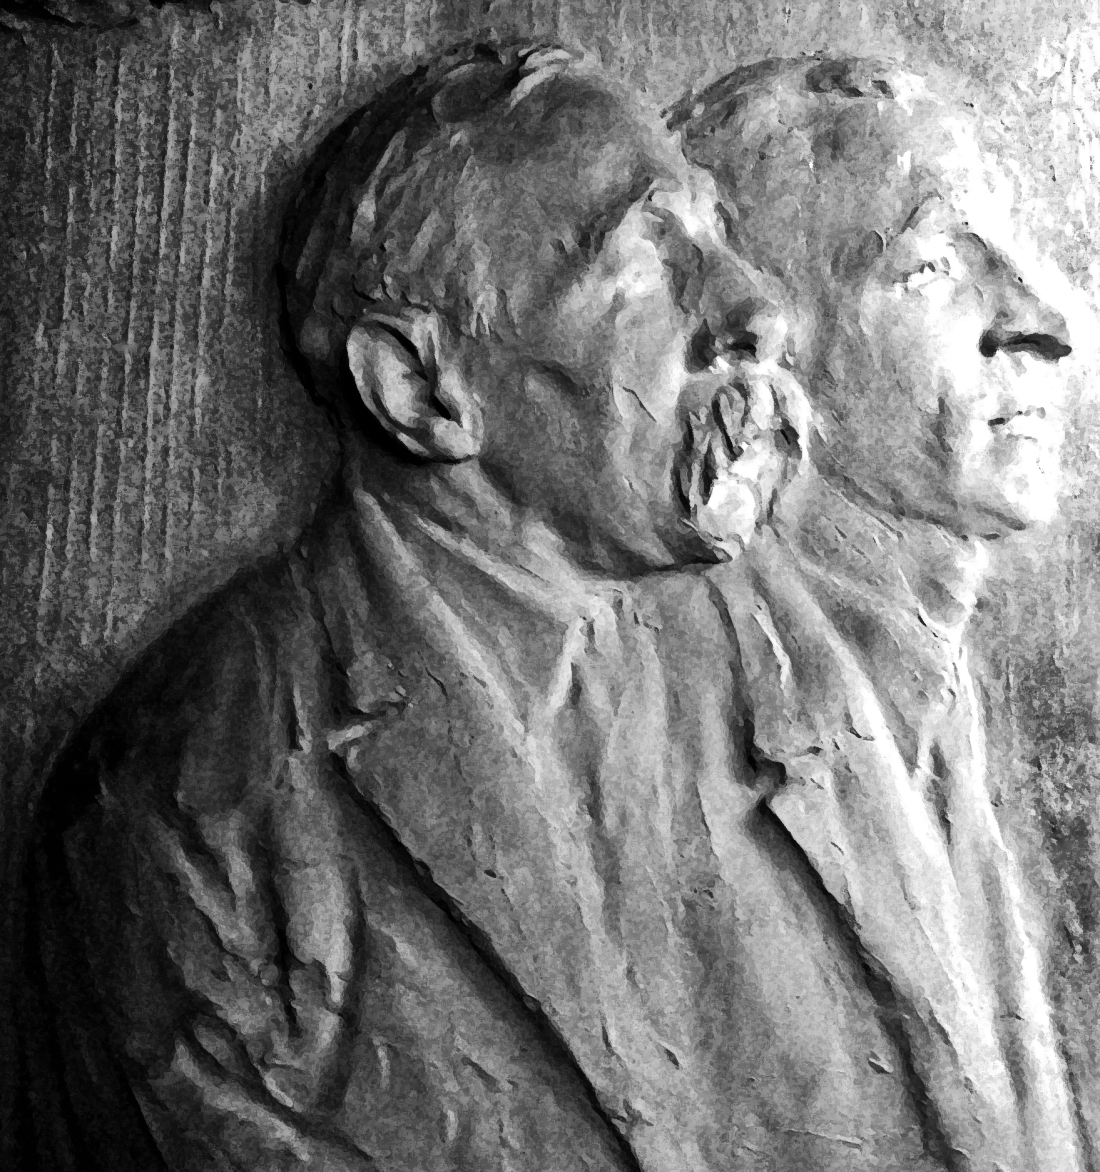 Bas Relief, Sacco and Vanzetti by Gutzon Borglum